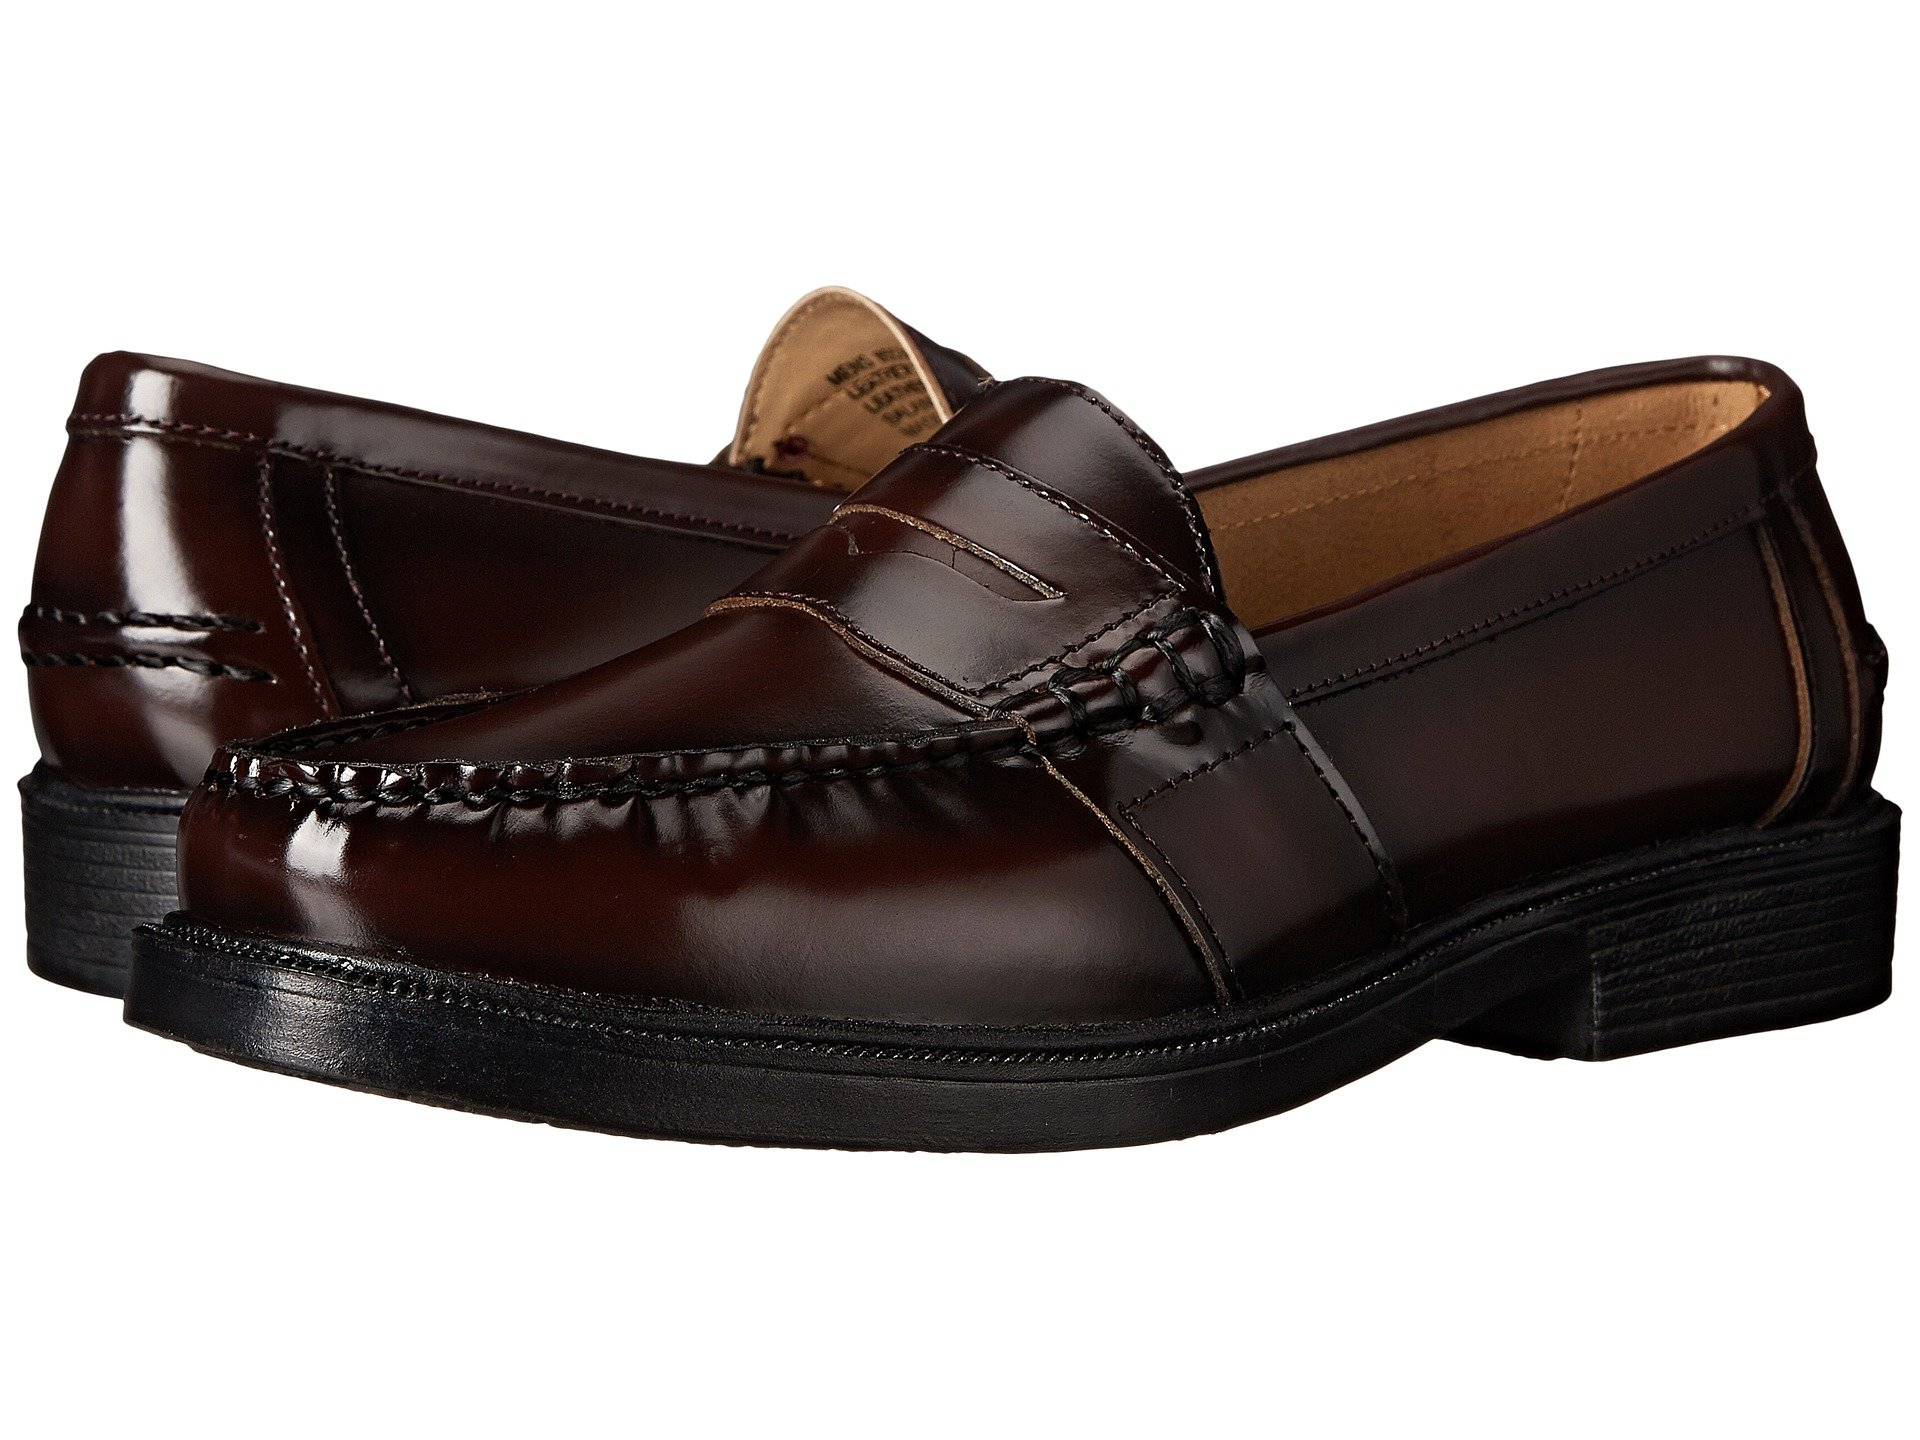 Nunn Bush Lincoln Penny Loafer At Zappos Com